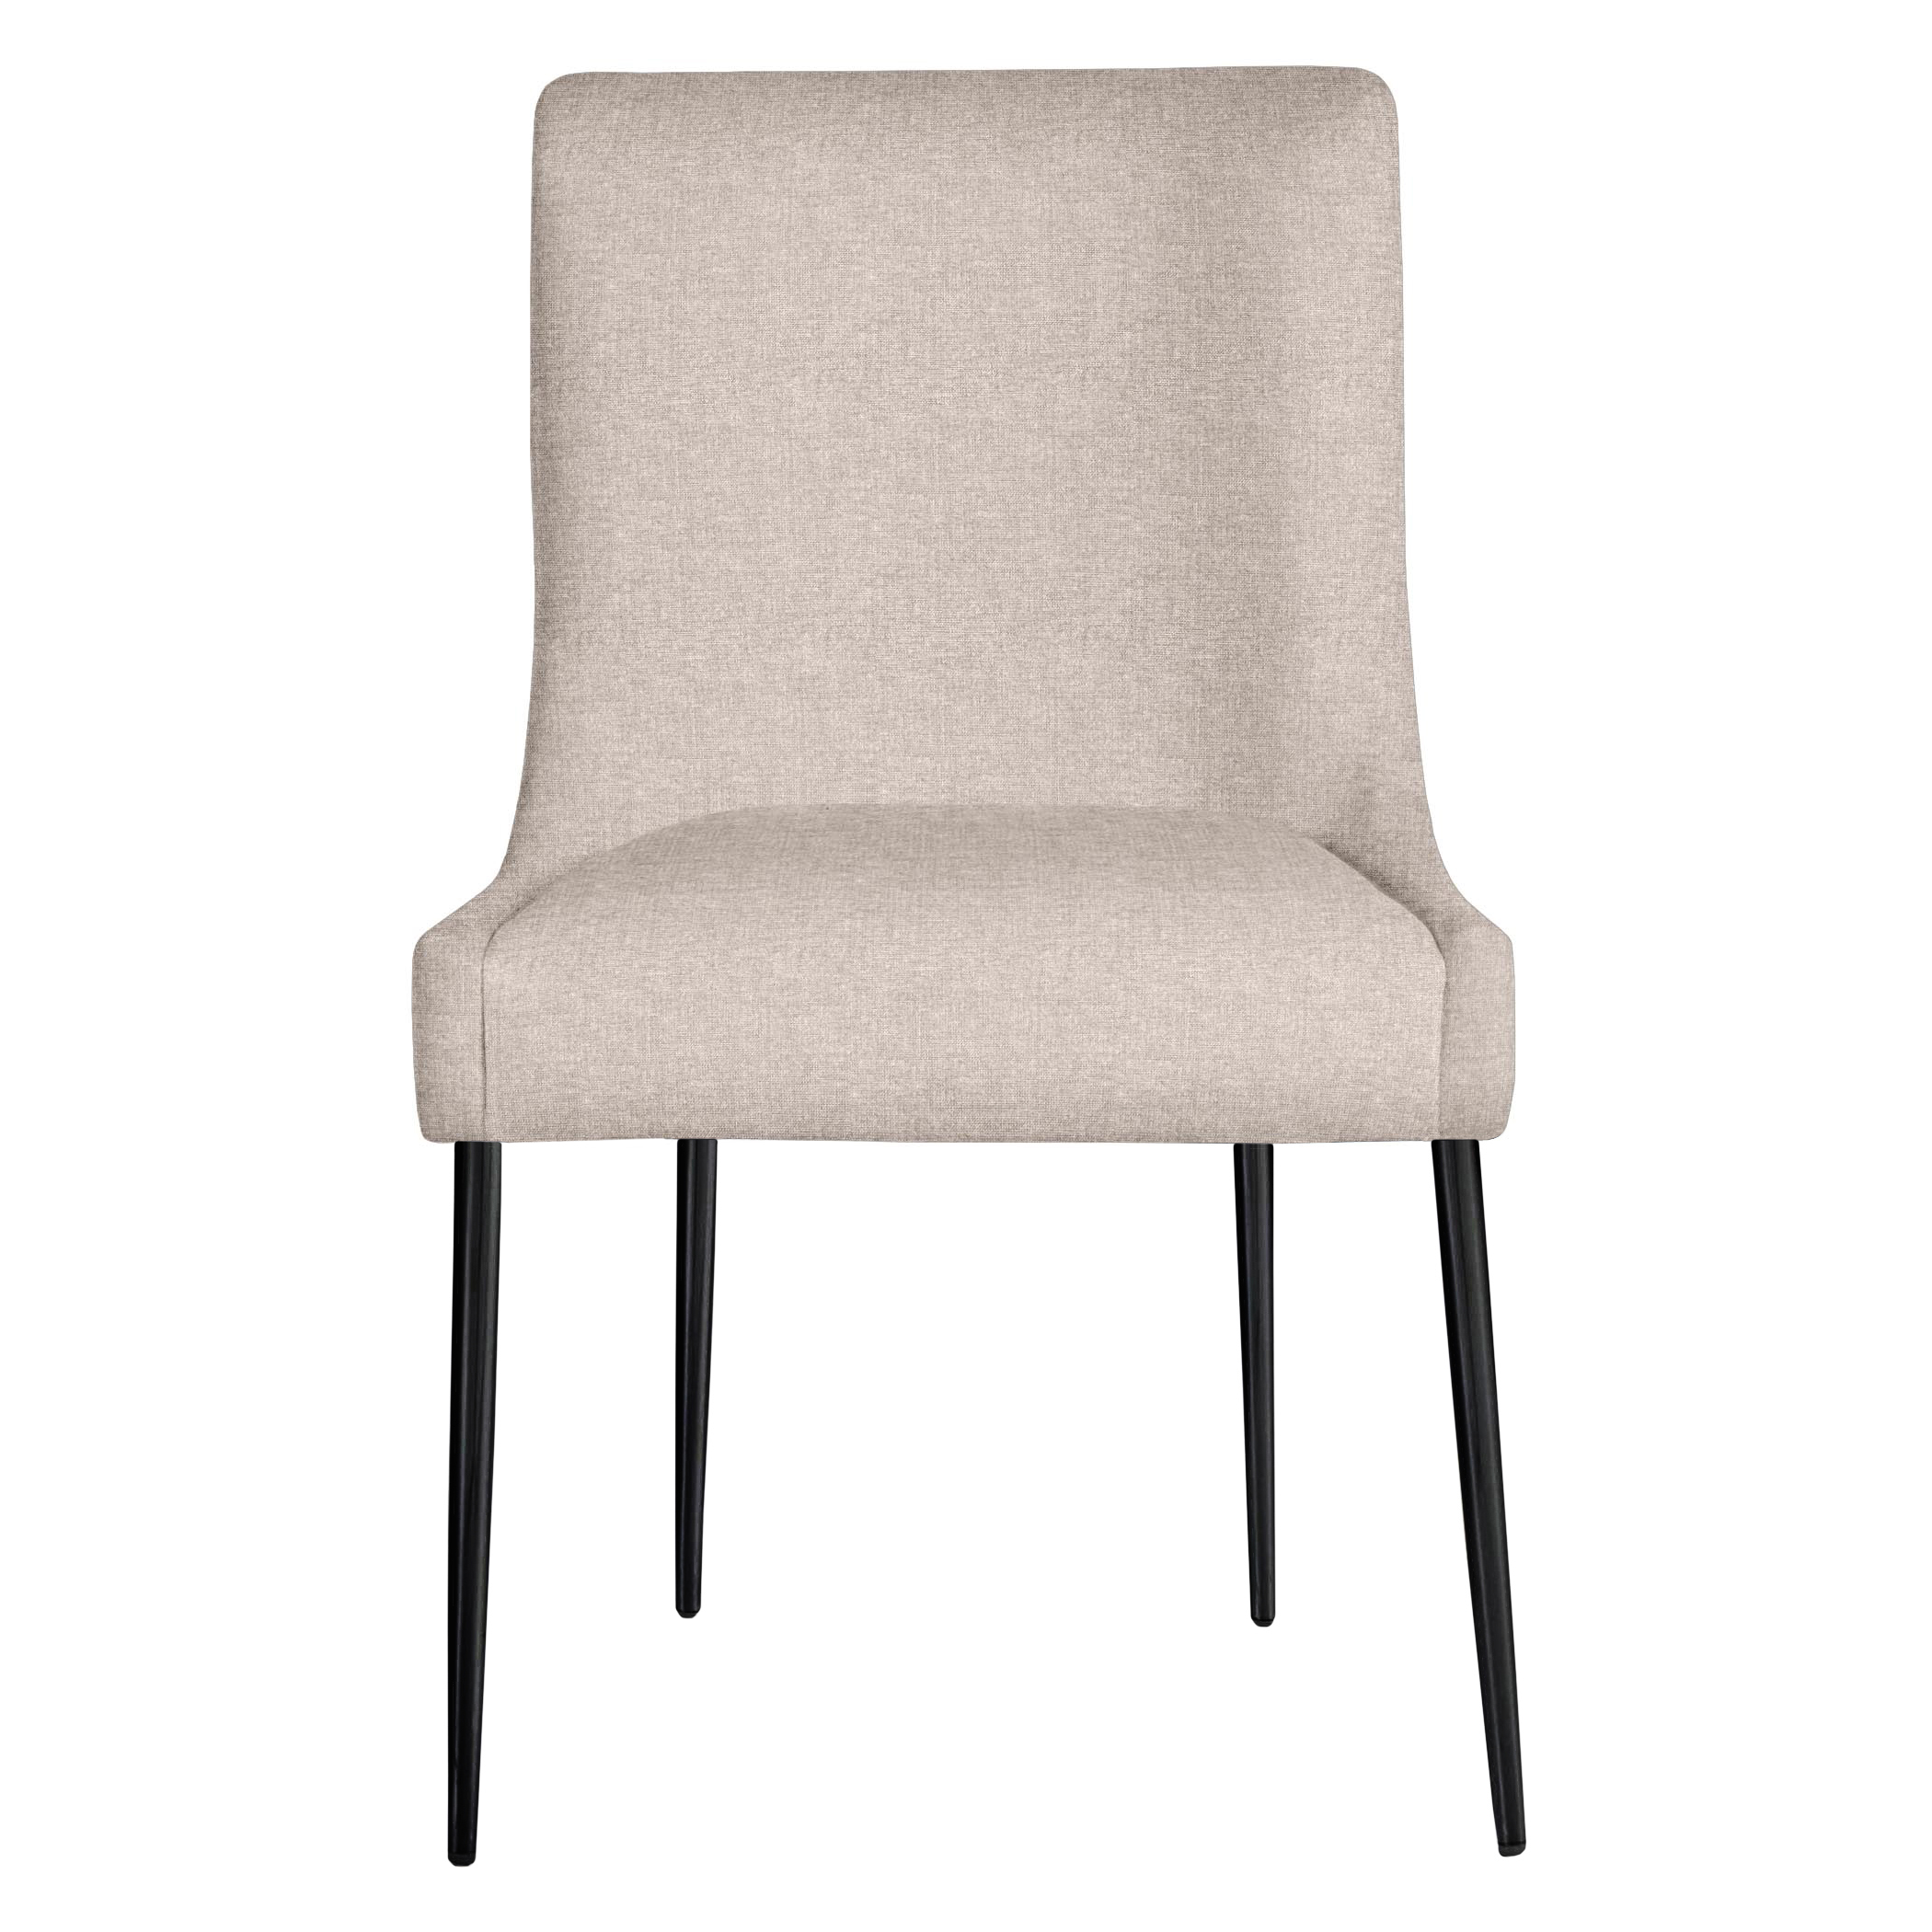 Elinor Dining Chair - Matte Black